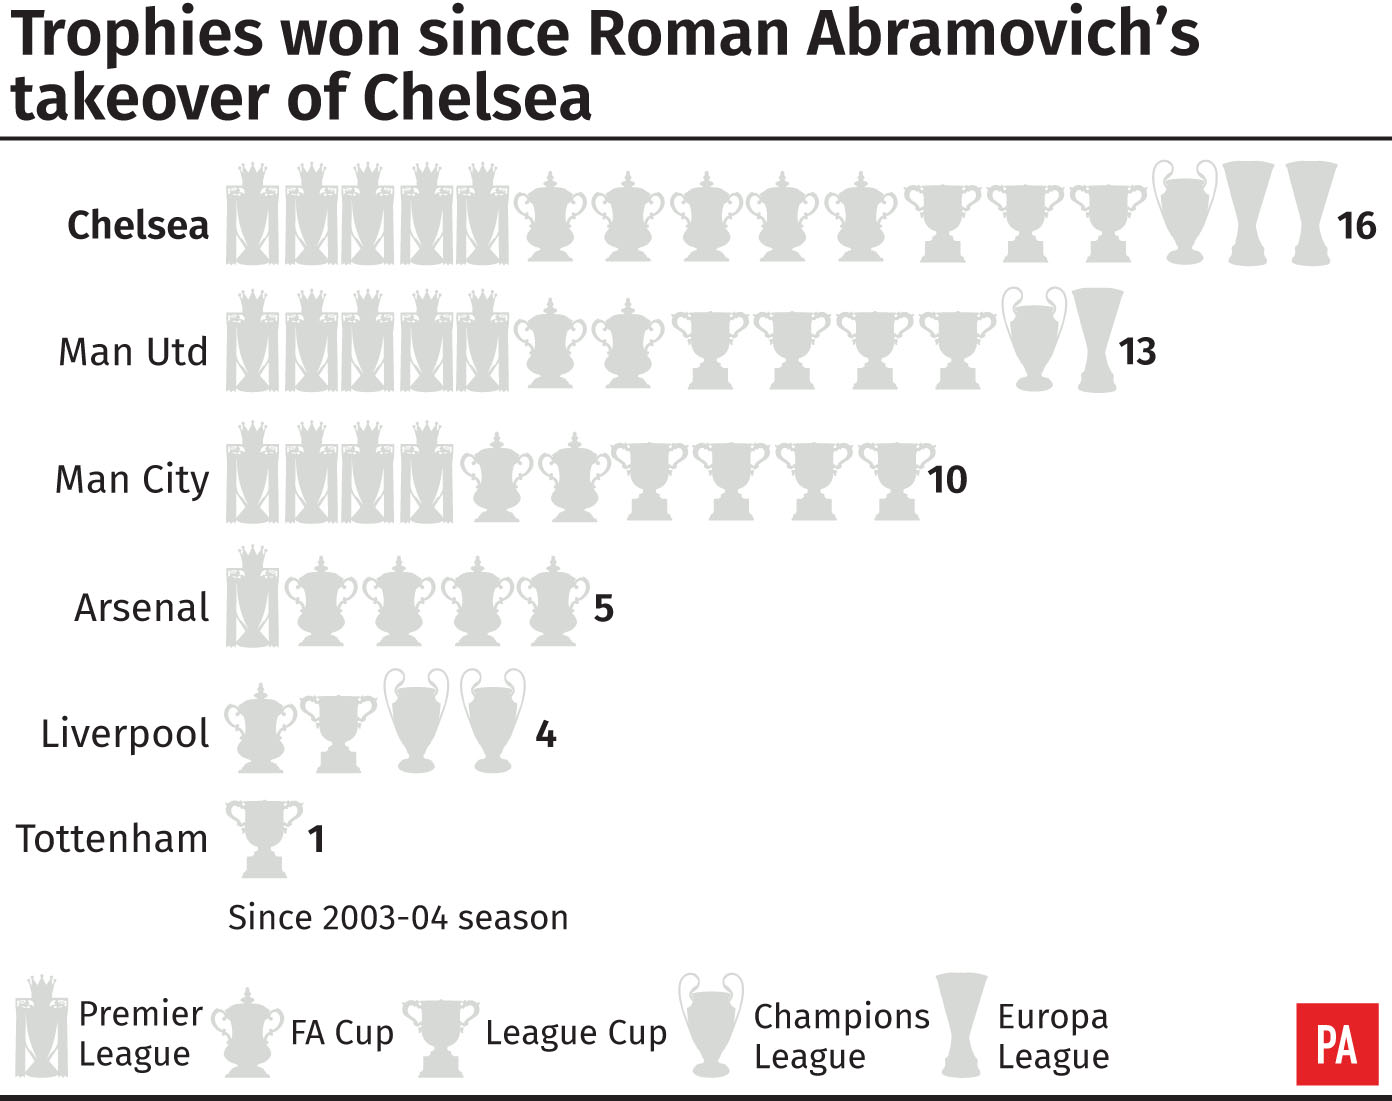 Trophies for the Premier League's 'big six' since Roman Abramovich's Chelsea takeover